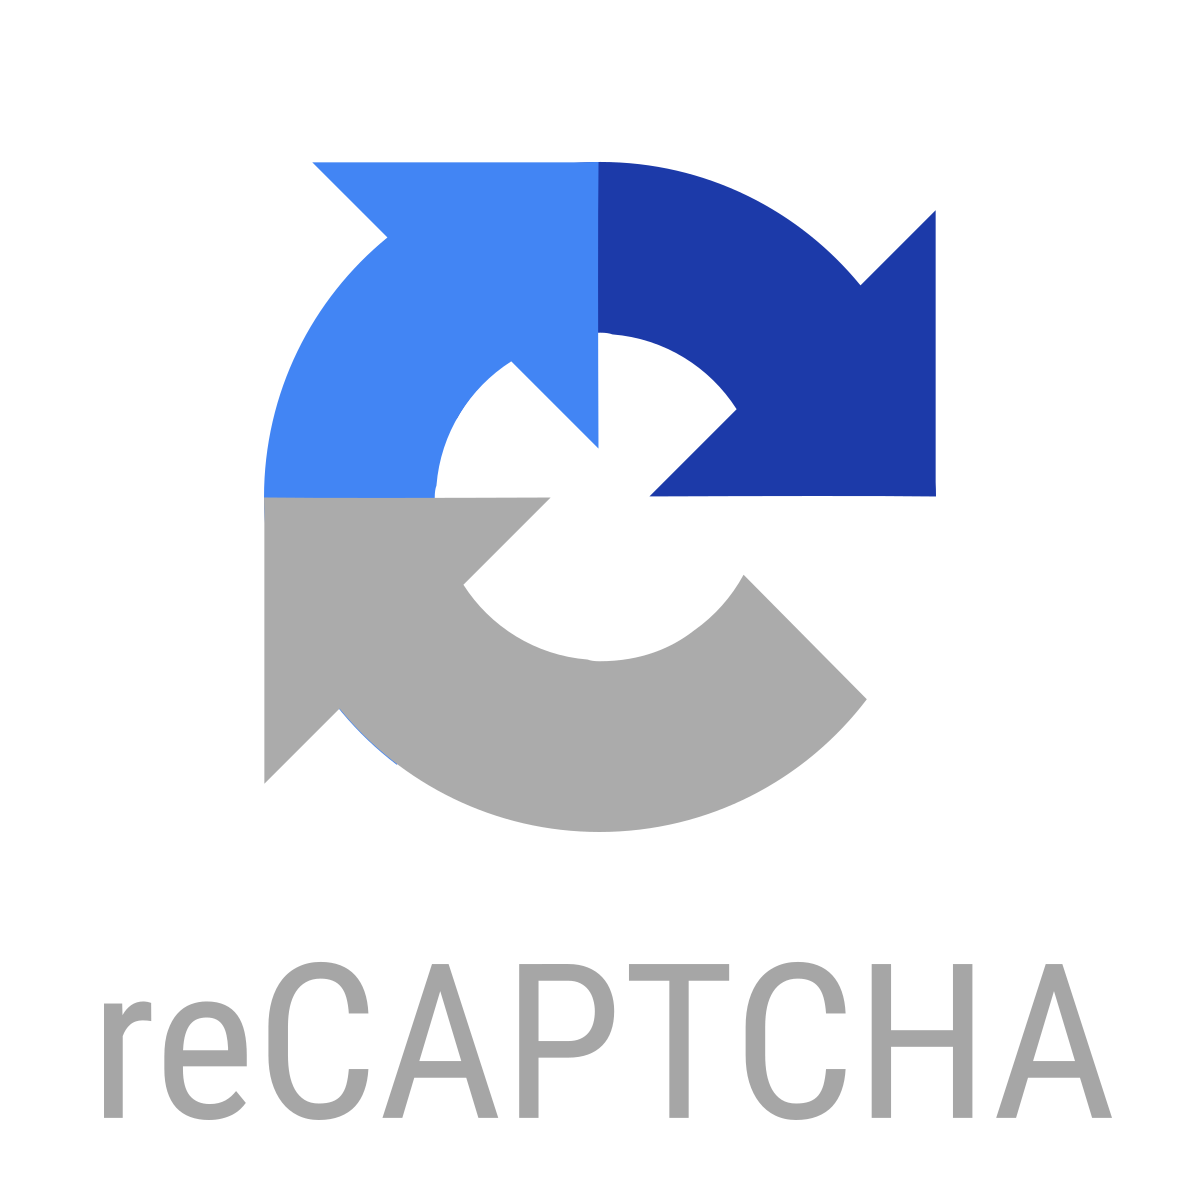 break website security captcha